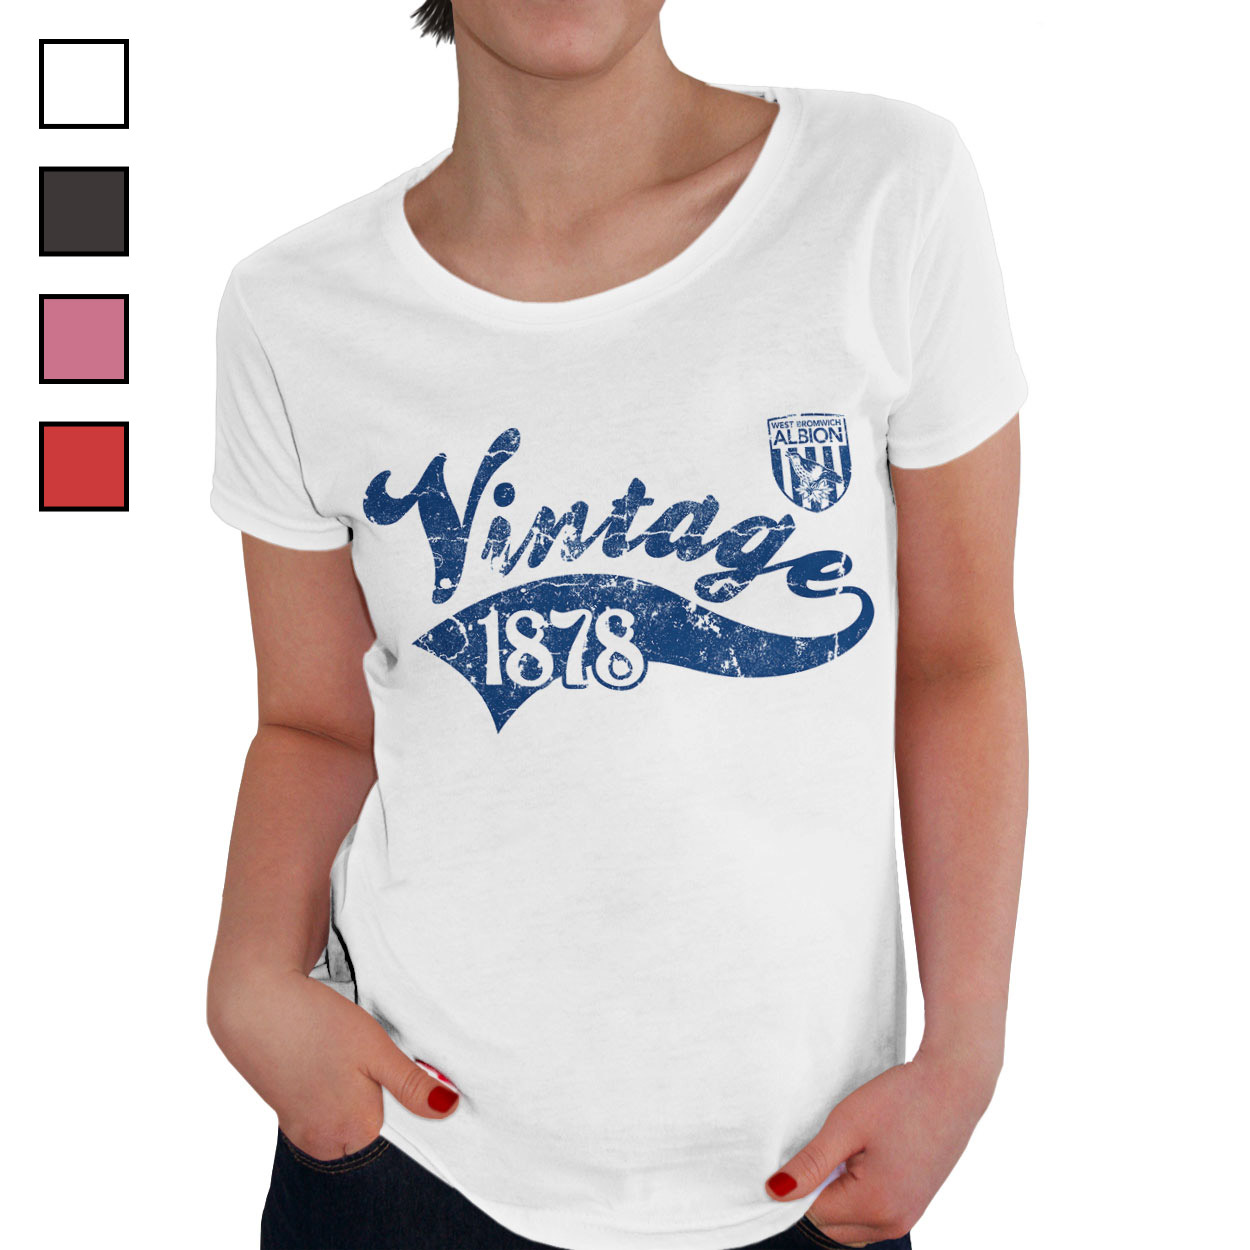 West Bromwich Albion FC Ladies Vintage T-Shirt